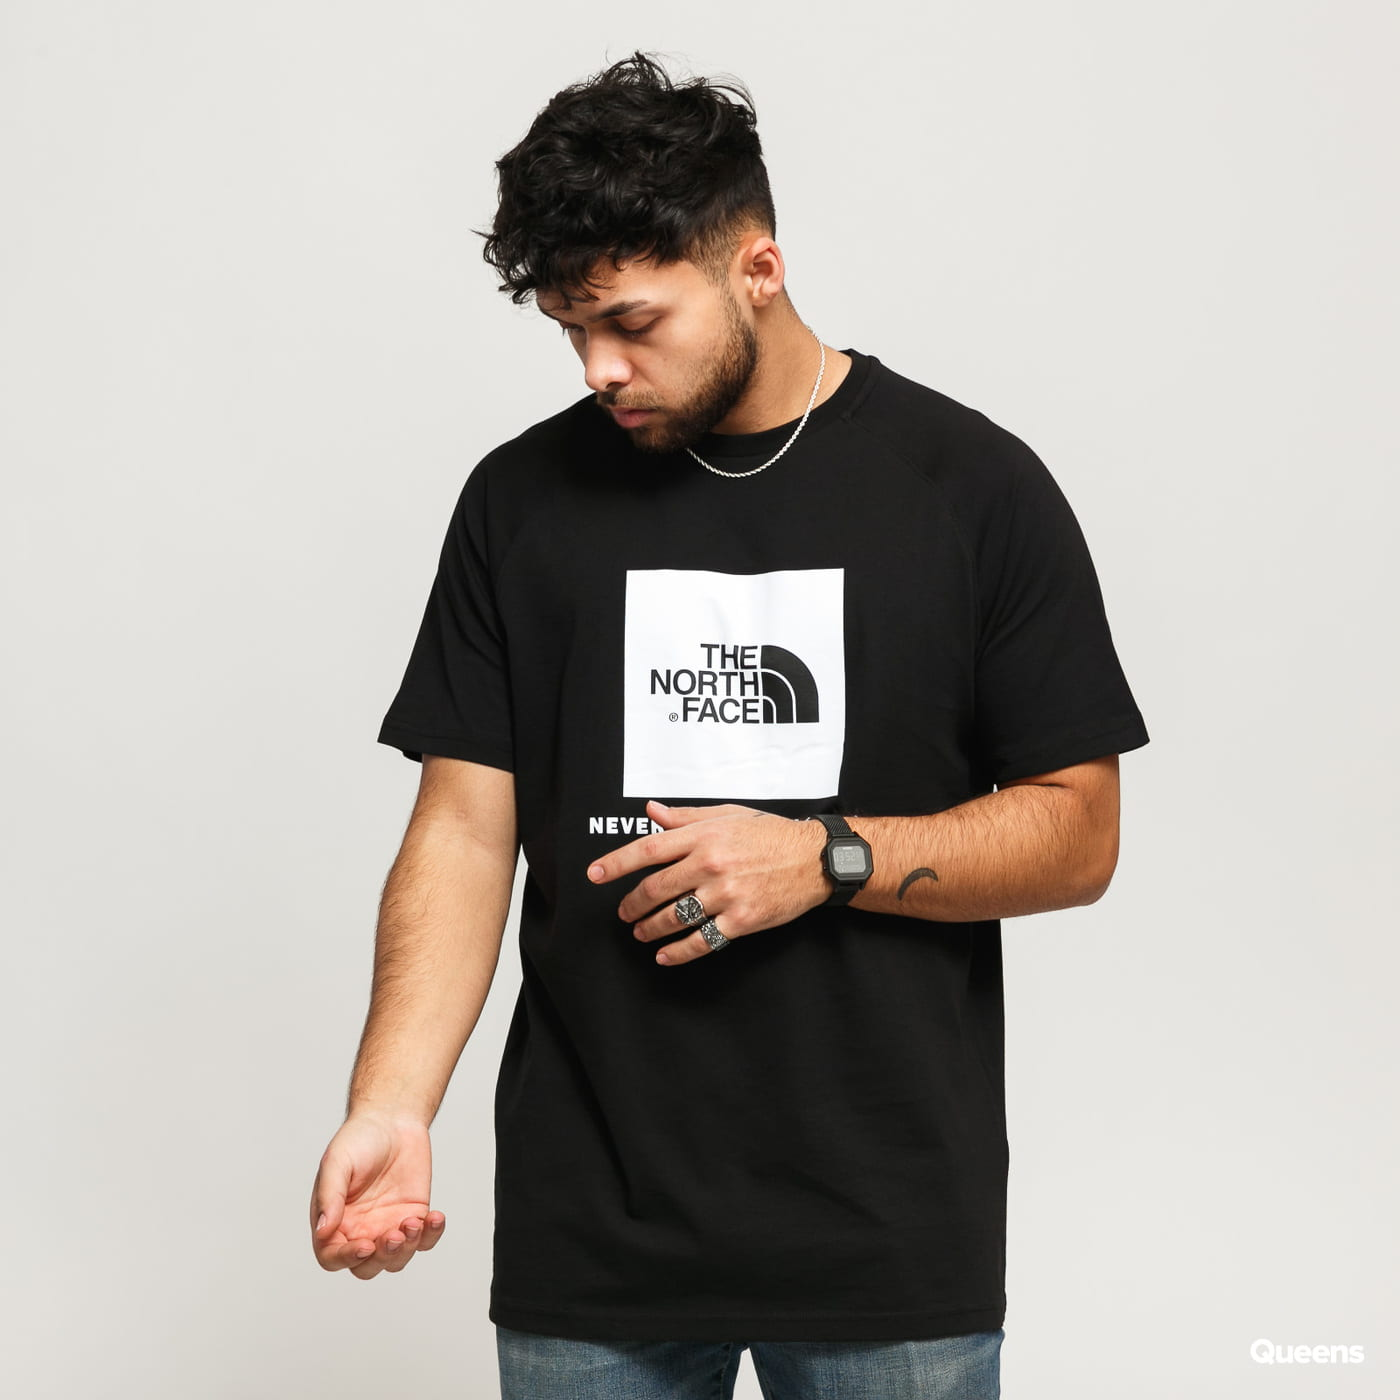 The North Face Youth Box Short Sleeve Tee Cotton T-Shirt